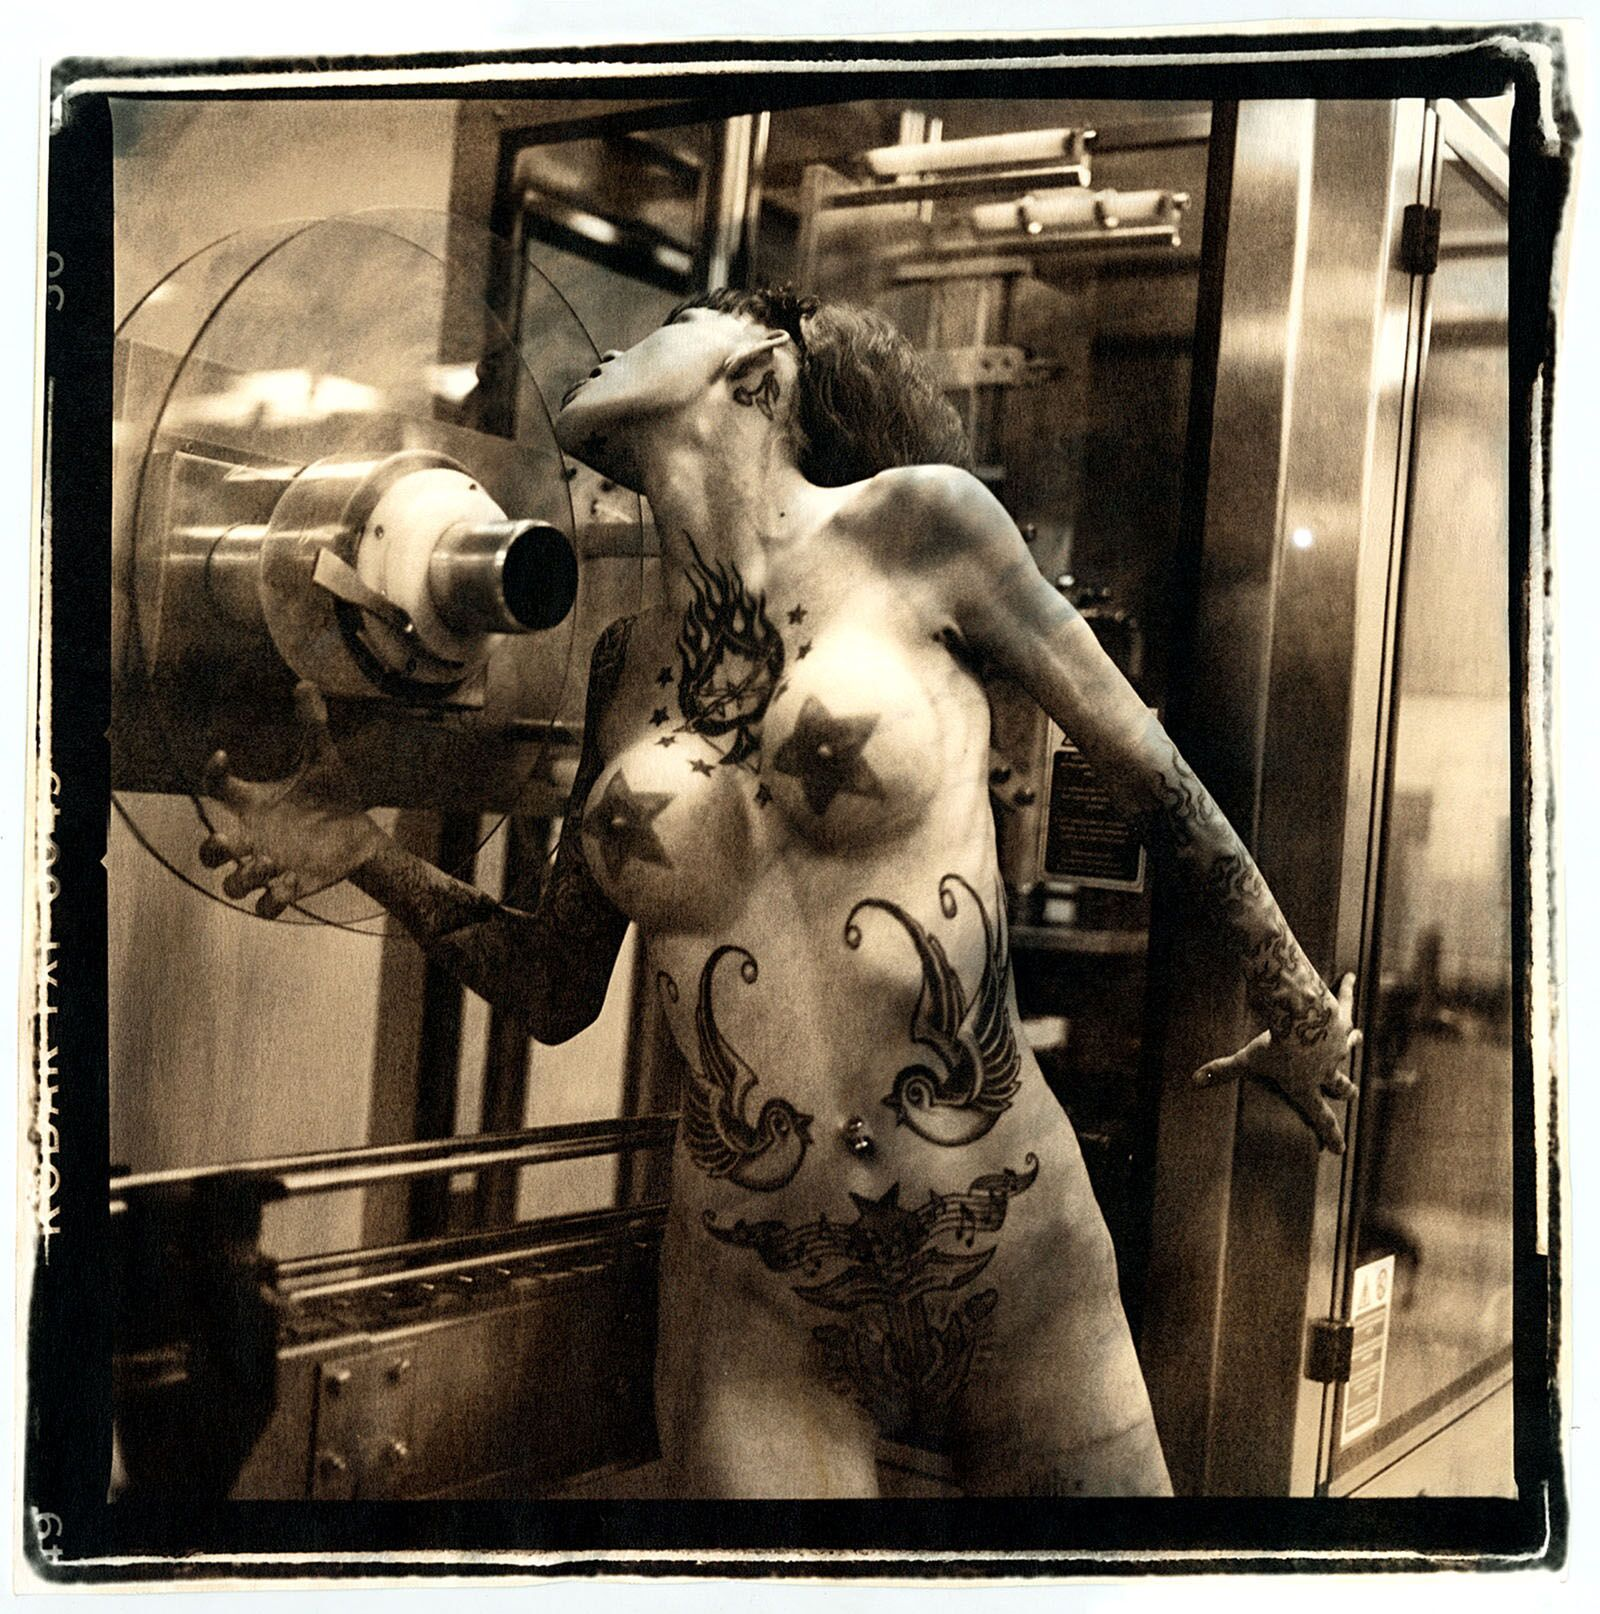 Francesca Galliani, Lza #21, 2003, Gelatin silver print manually toned, 50X60, edition: series of 5, Courtesy Vision Quest